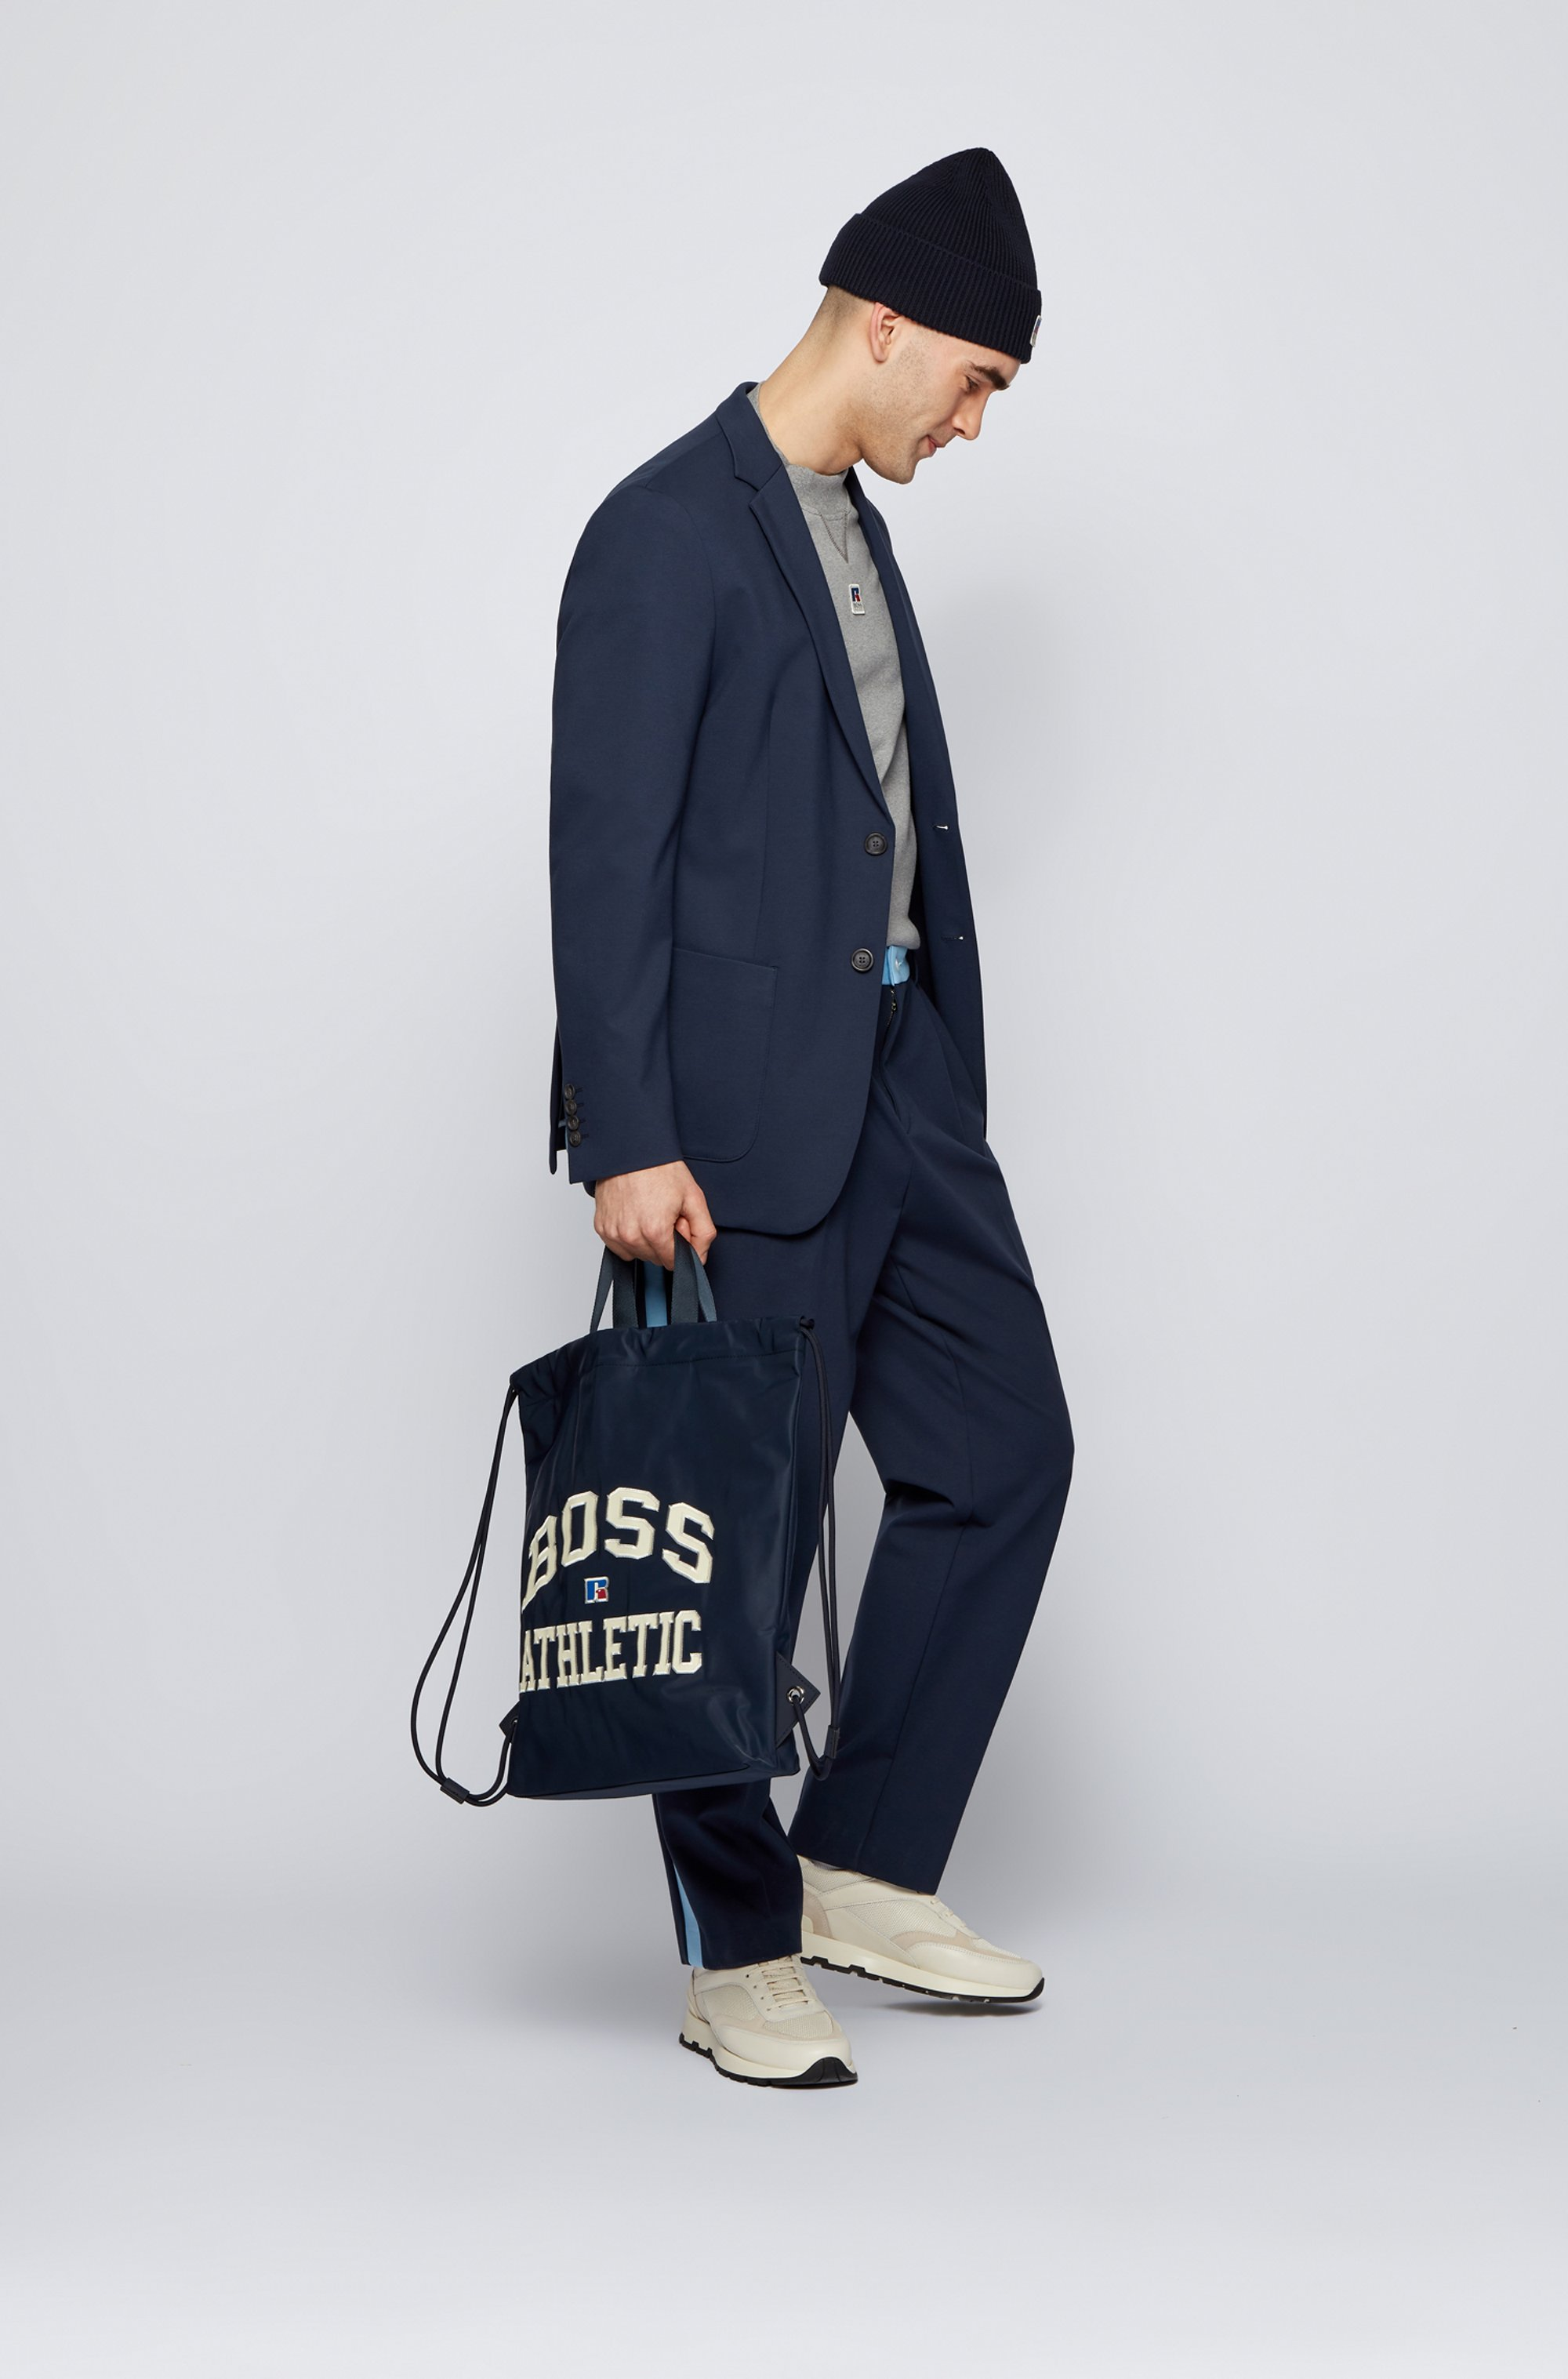 Drawstring bag in lightweight nylon with exclusive logo